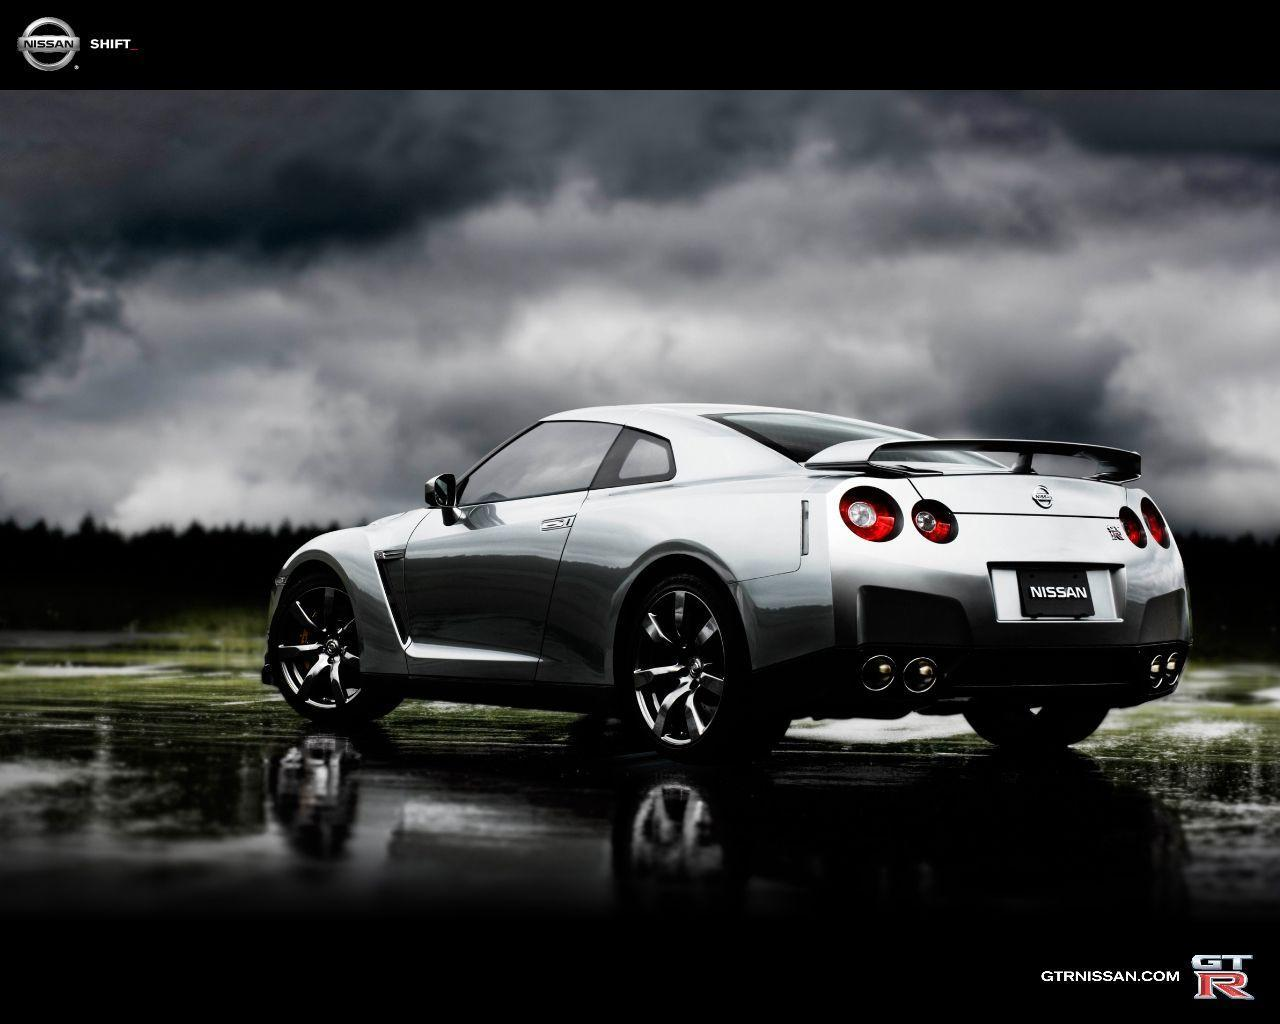 163 Nissan GT-R HD Wallpapers | Backgrounds - Wallpaper Abyss